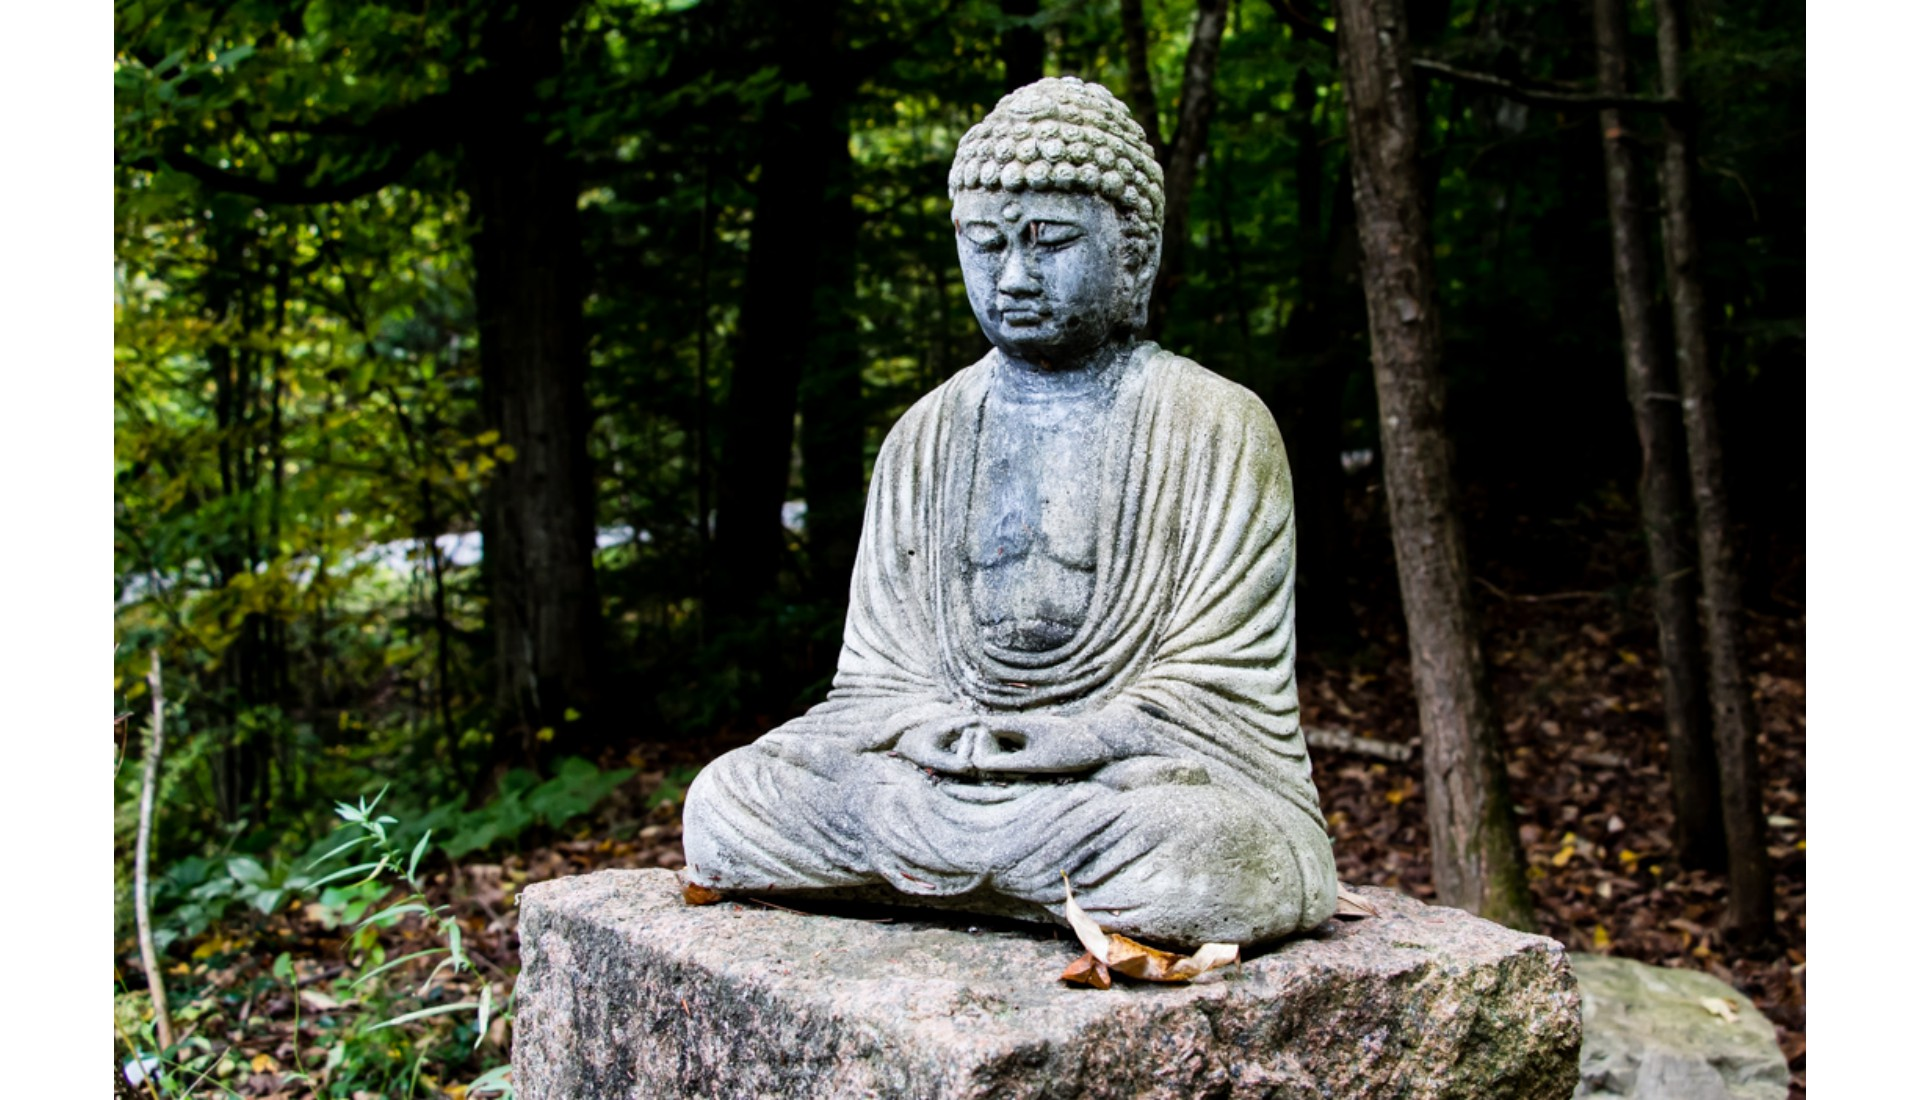 BAckyard Buddha, Chelsea, QC, 2015